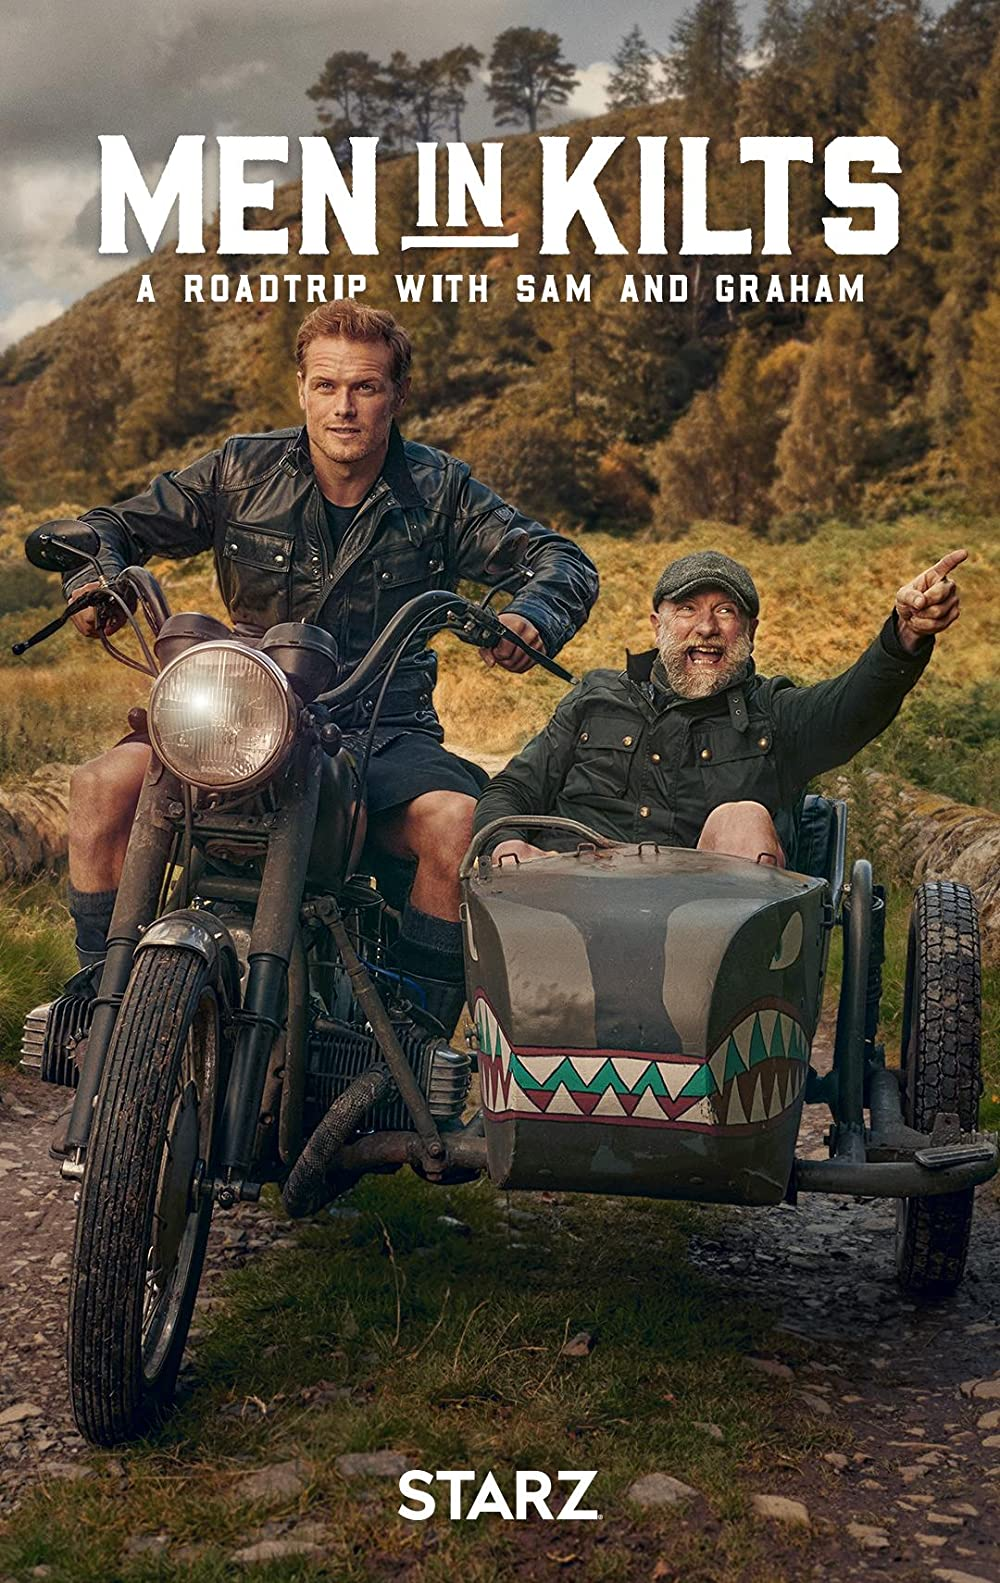 Watch Men in Kilts: A Roadtrip with Sam and Graham Online